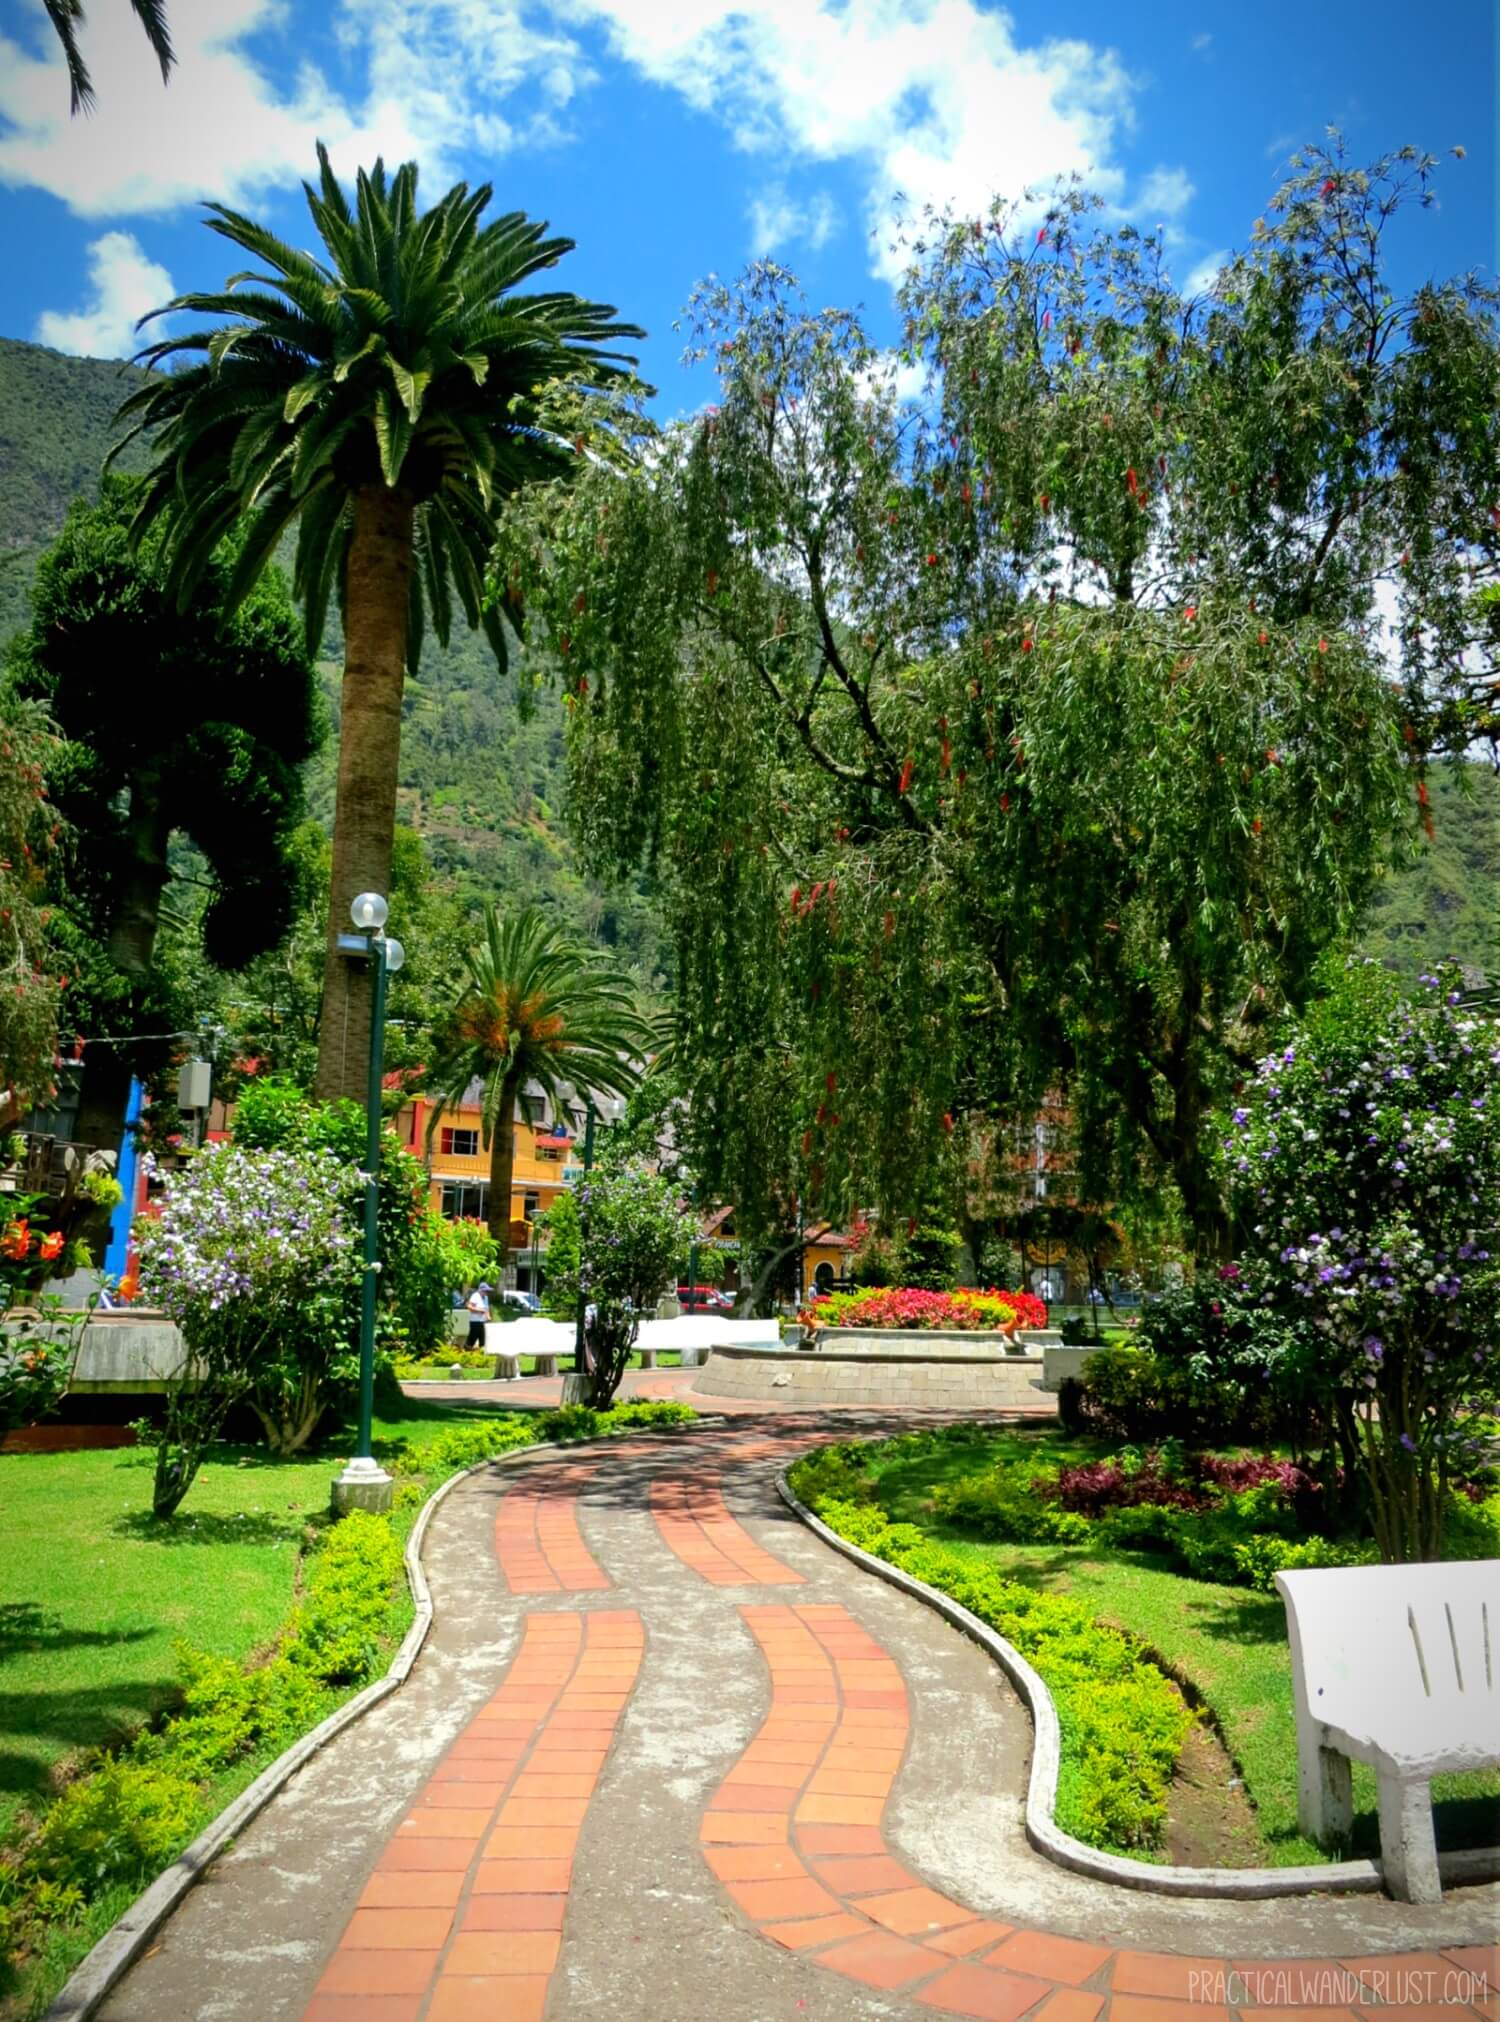 One of the many beautiful parks in the adventure capital of South America: Baños, Ecuador.